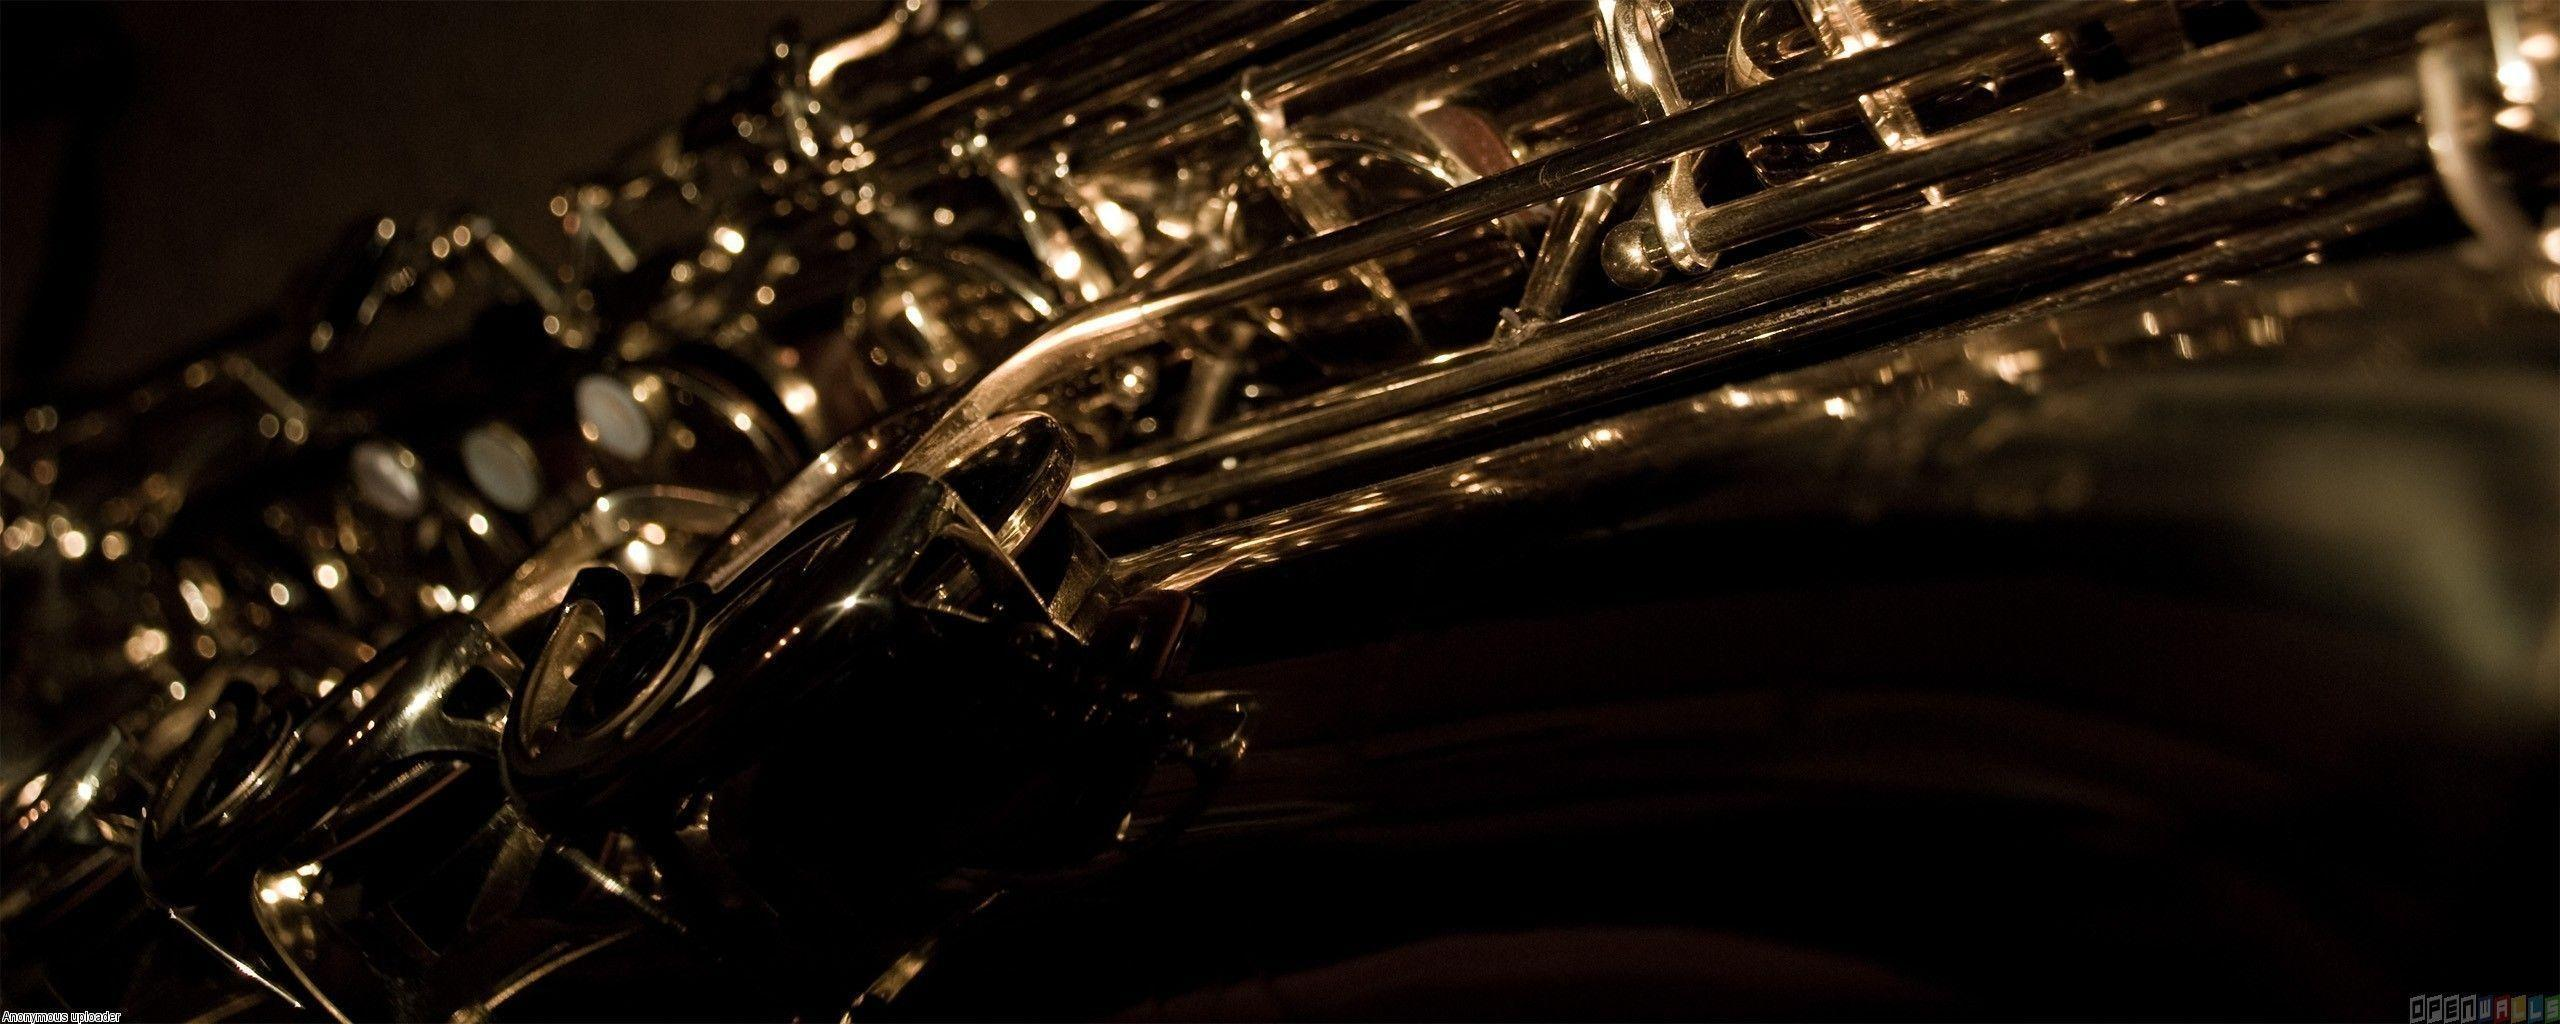 Images For > Jazz Saxophone Wallpaper